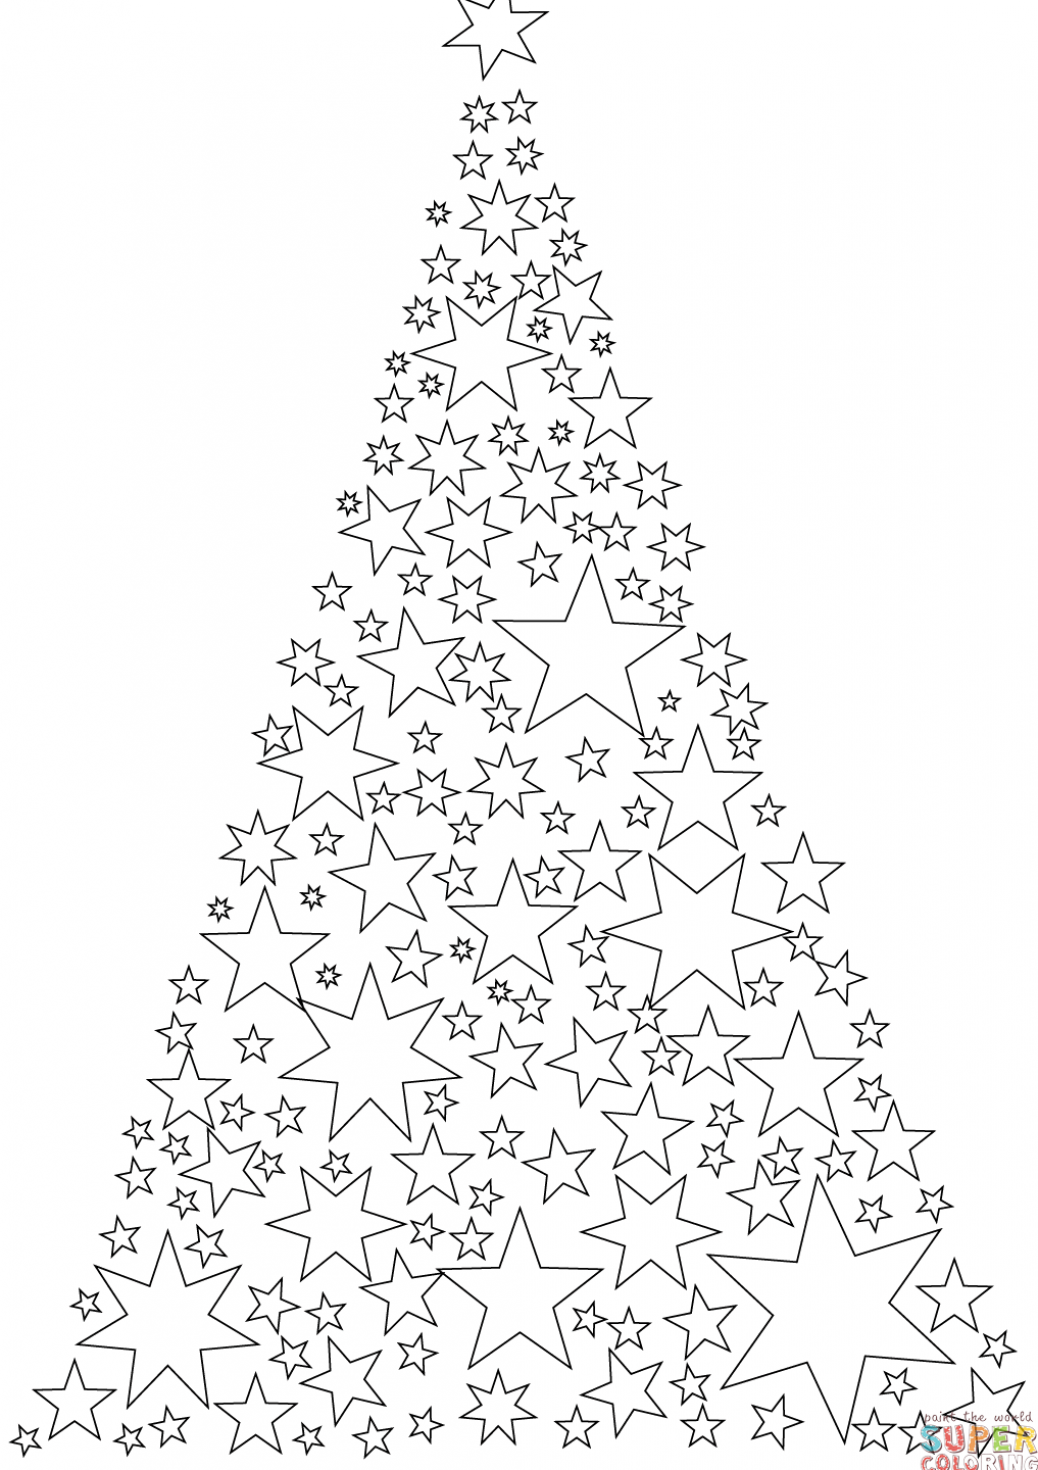 Christmas Tree Made Of Stars Coloring Page Free Printable Coloring Pages Printable Christmas Coloring Pages Christmas Tree Coloring Page Star Coloring Pages